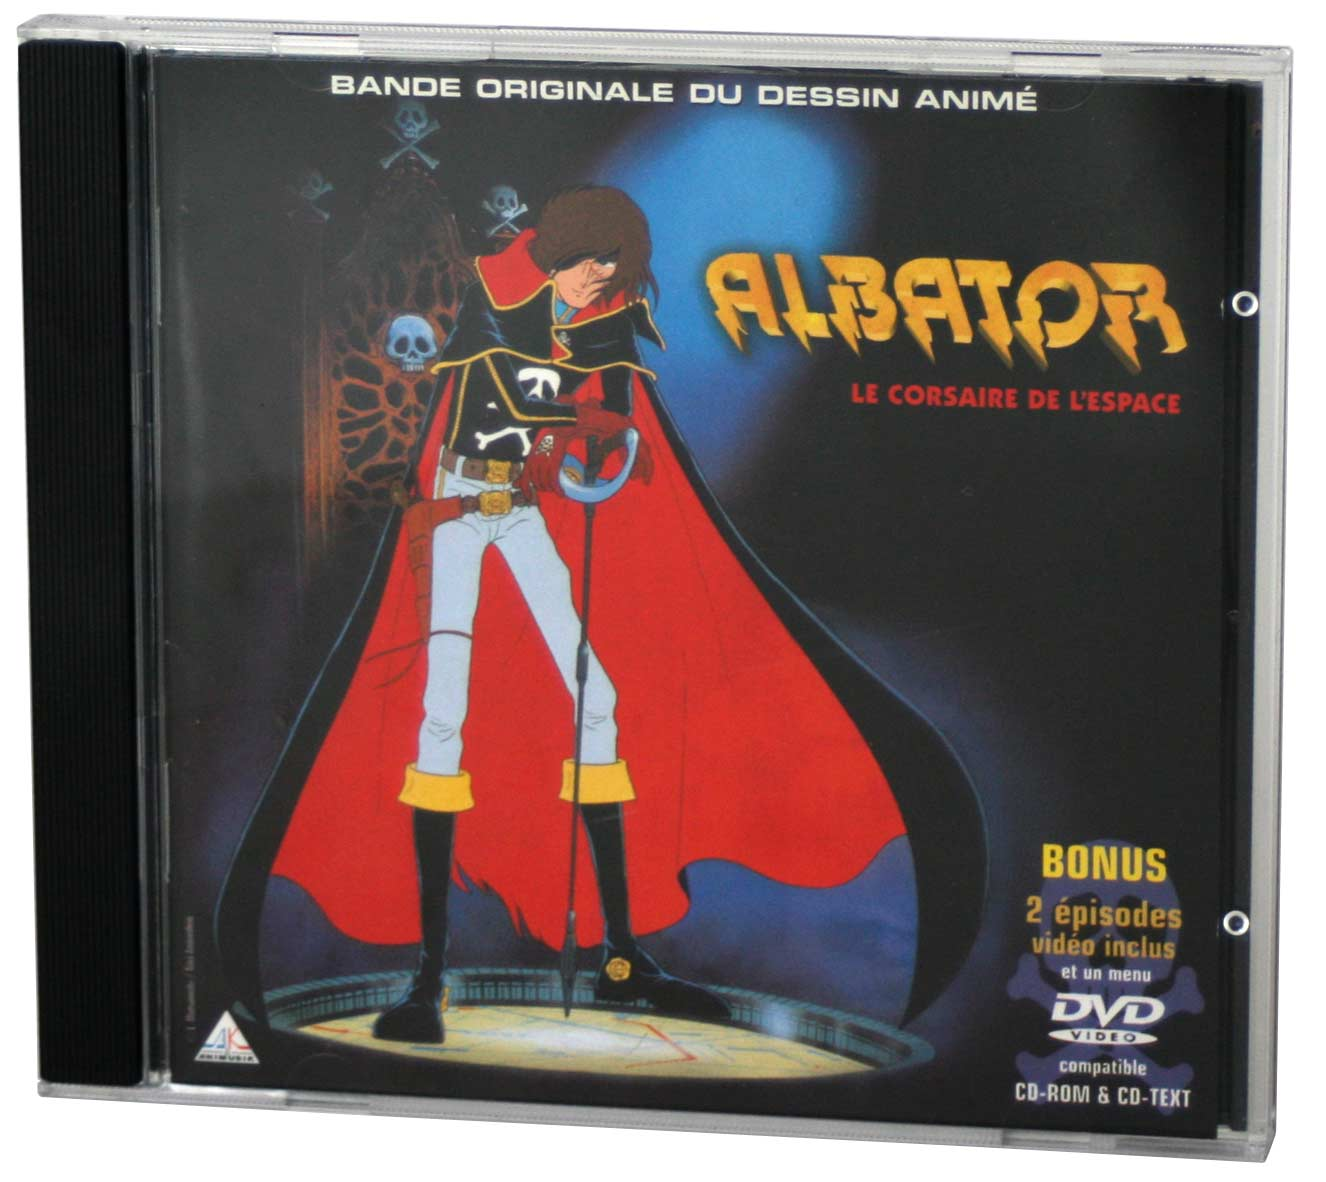 BO dAlbator 78 (CD Audio et Vido)